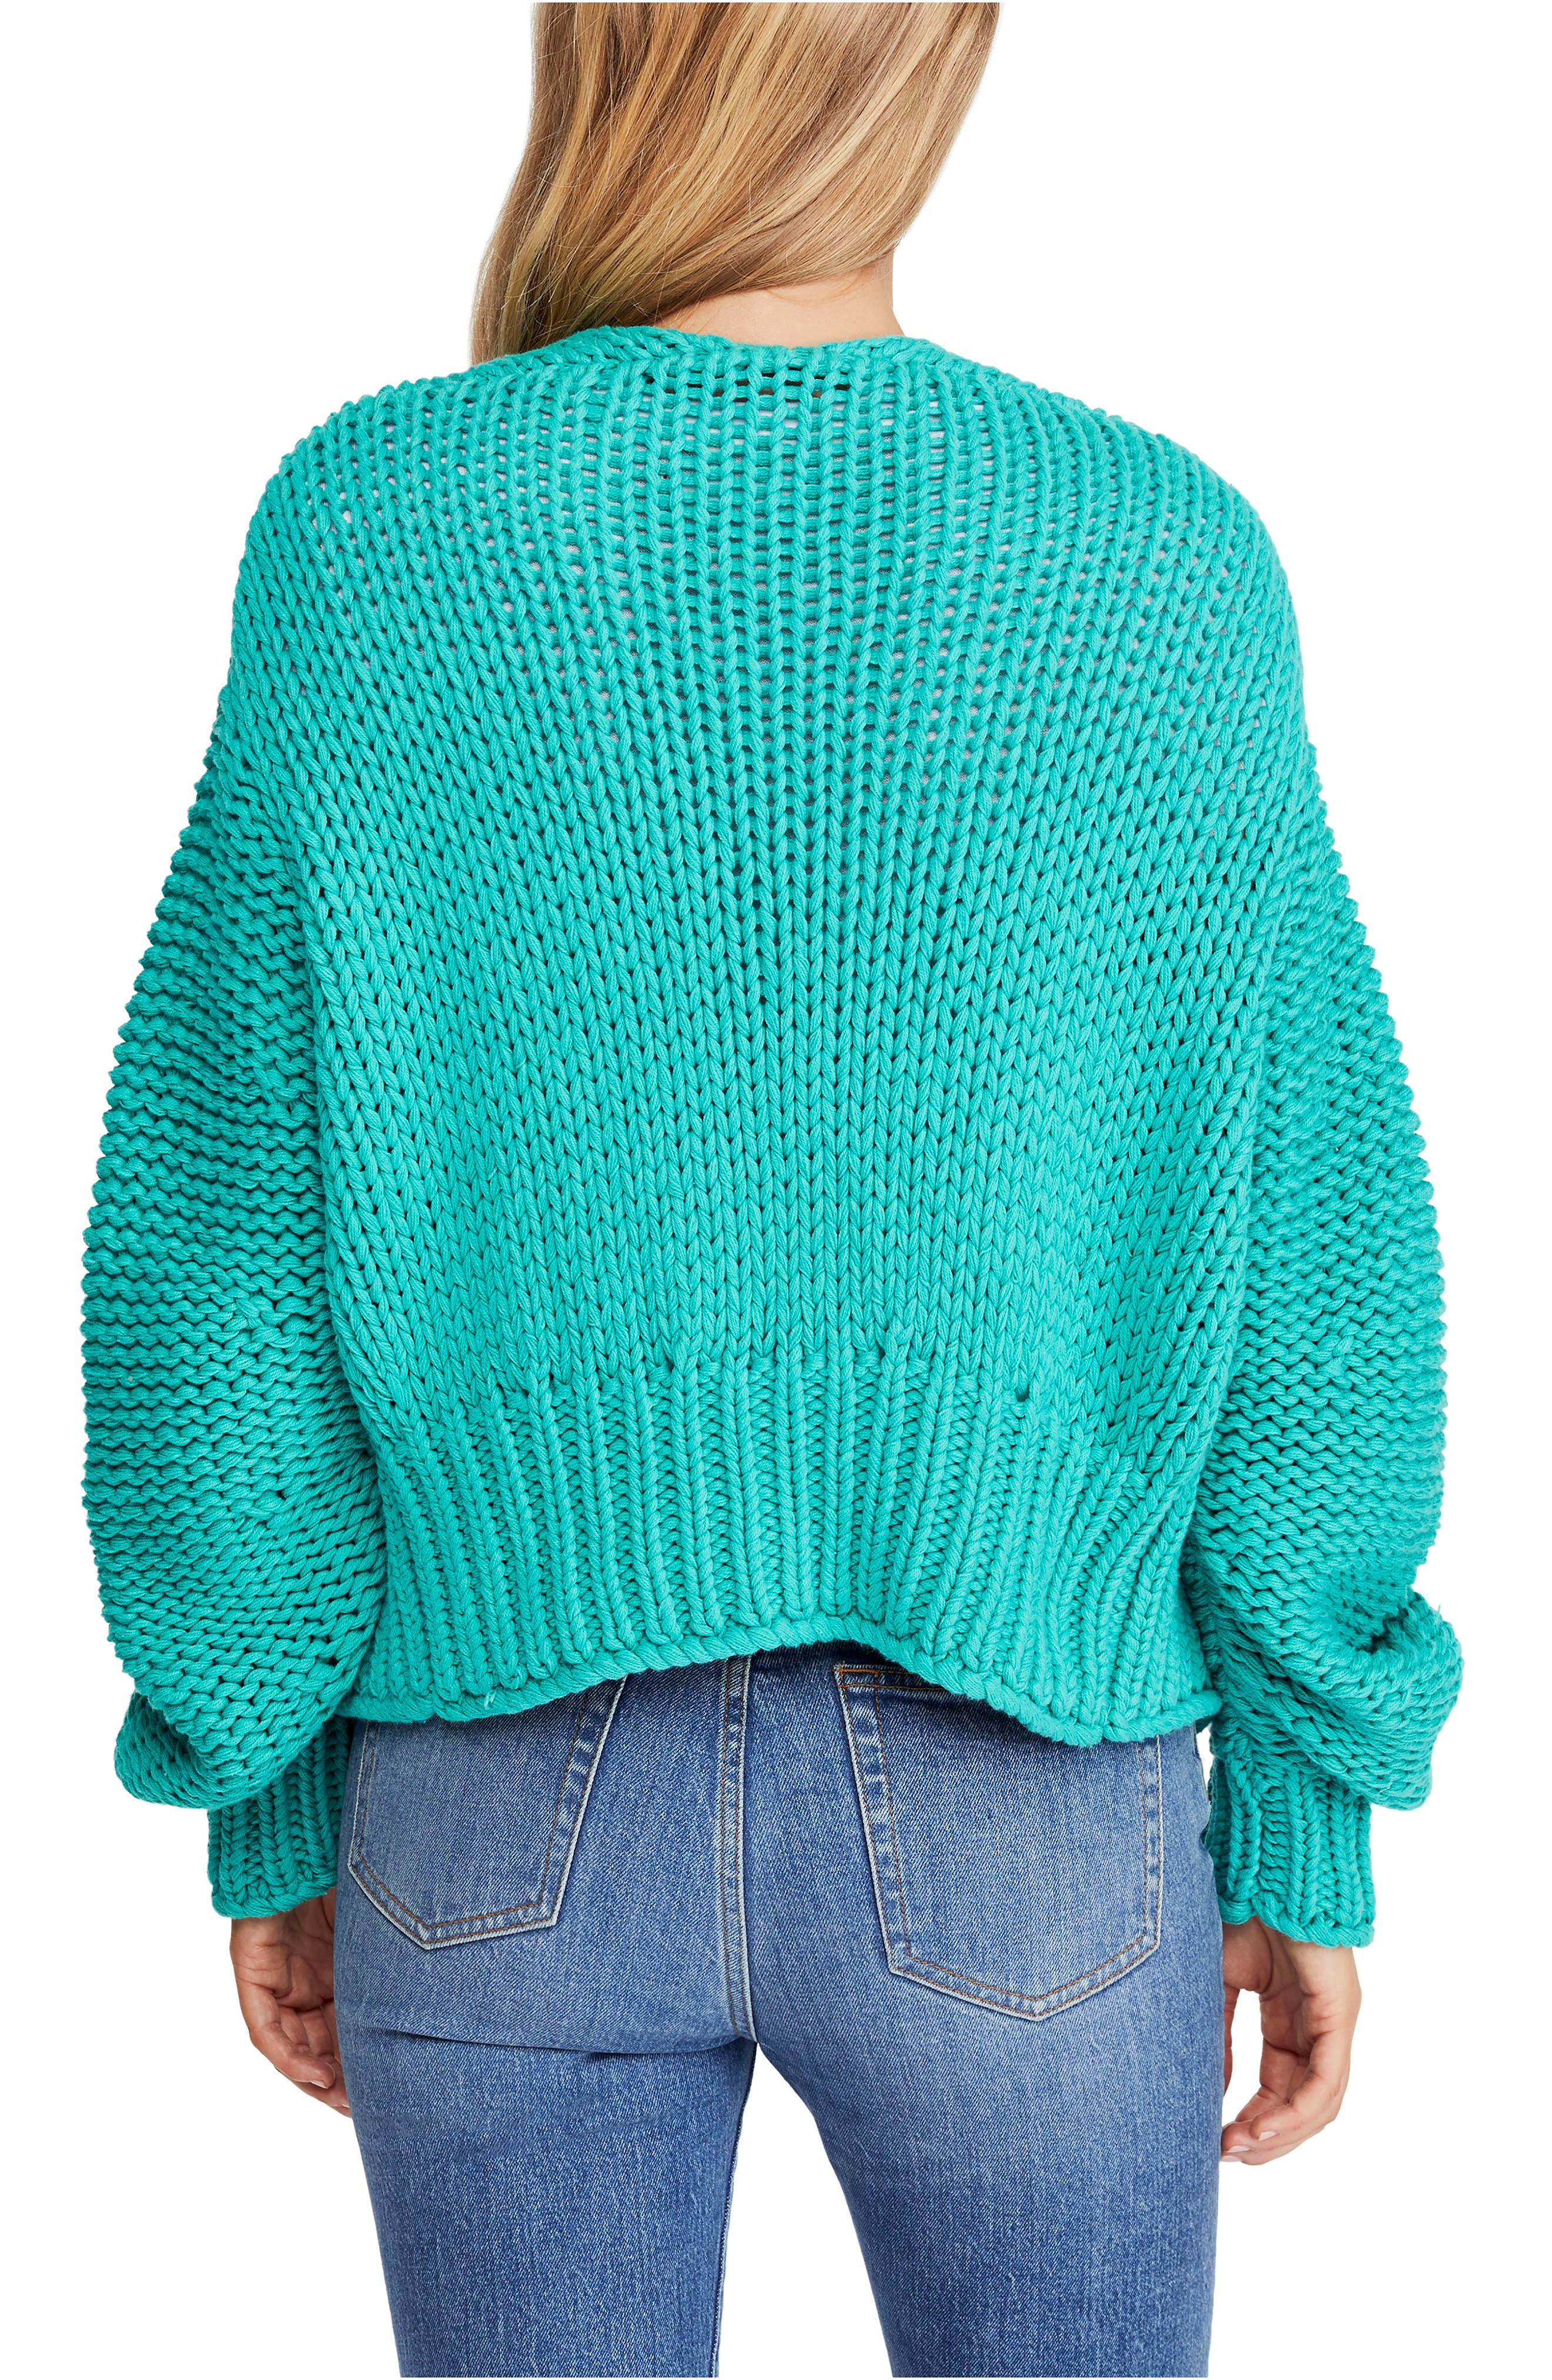 FREE PEOPLE, Glow For It Cardigan, Alternate thumbnail 2, color, 440